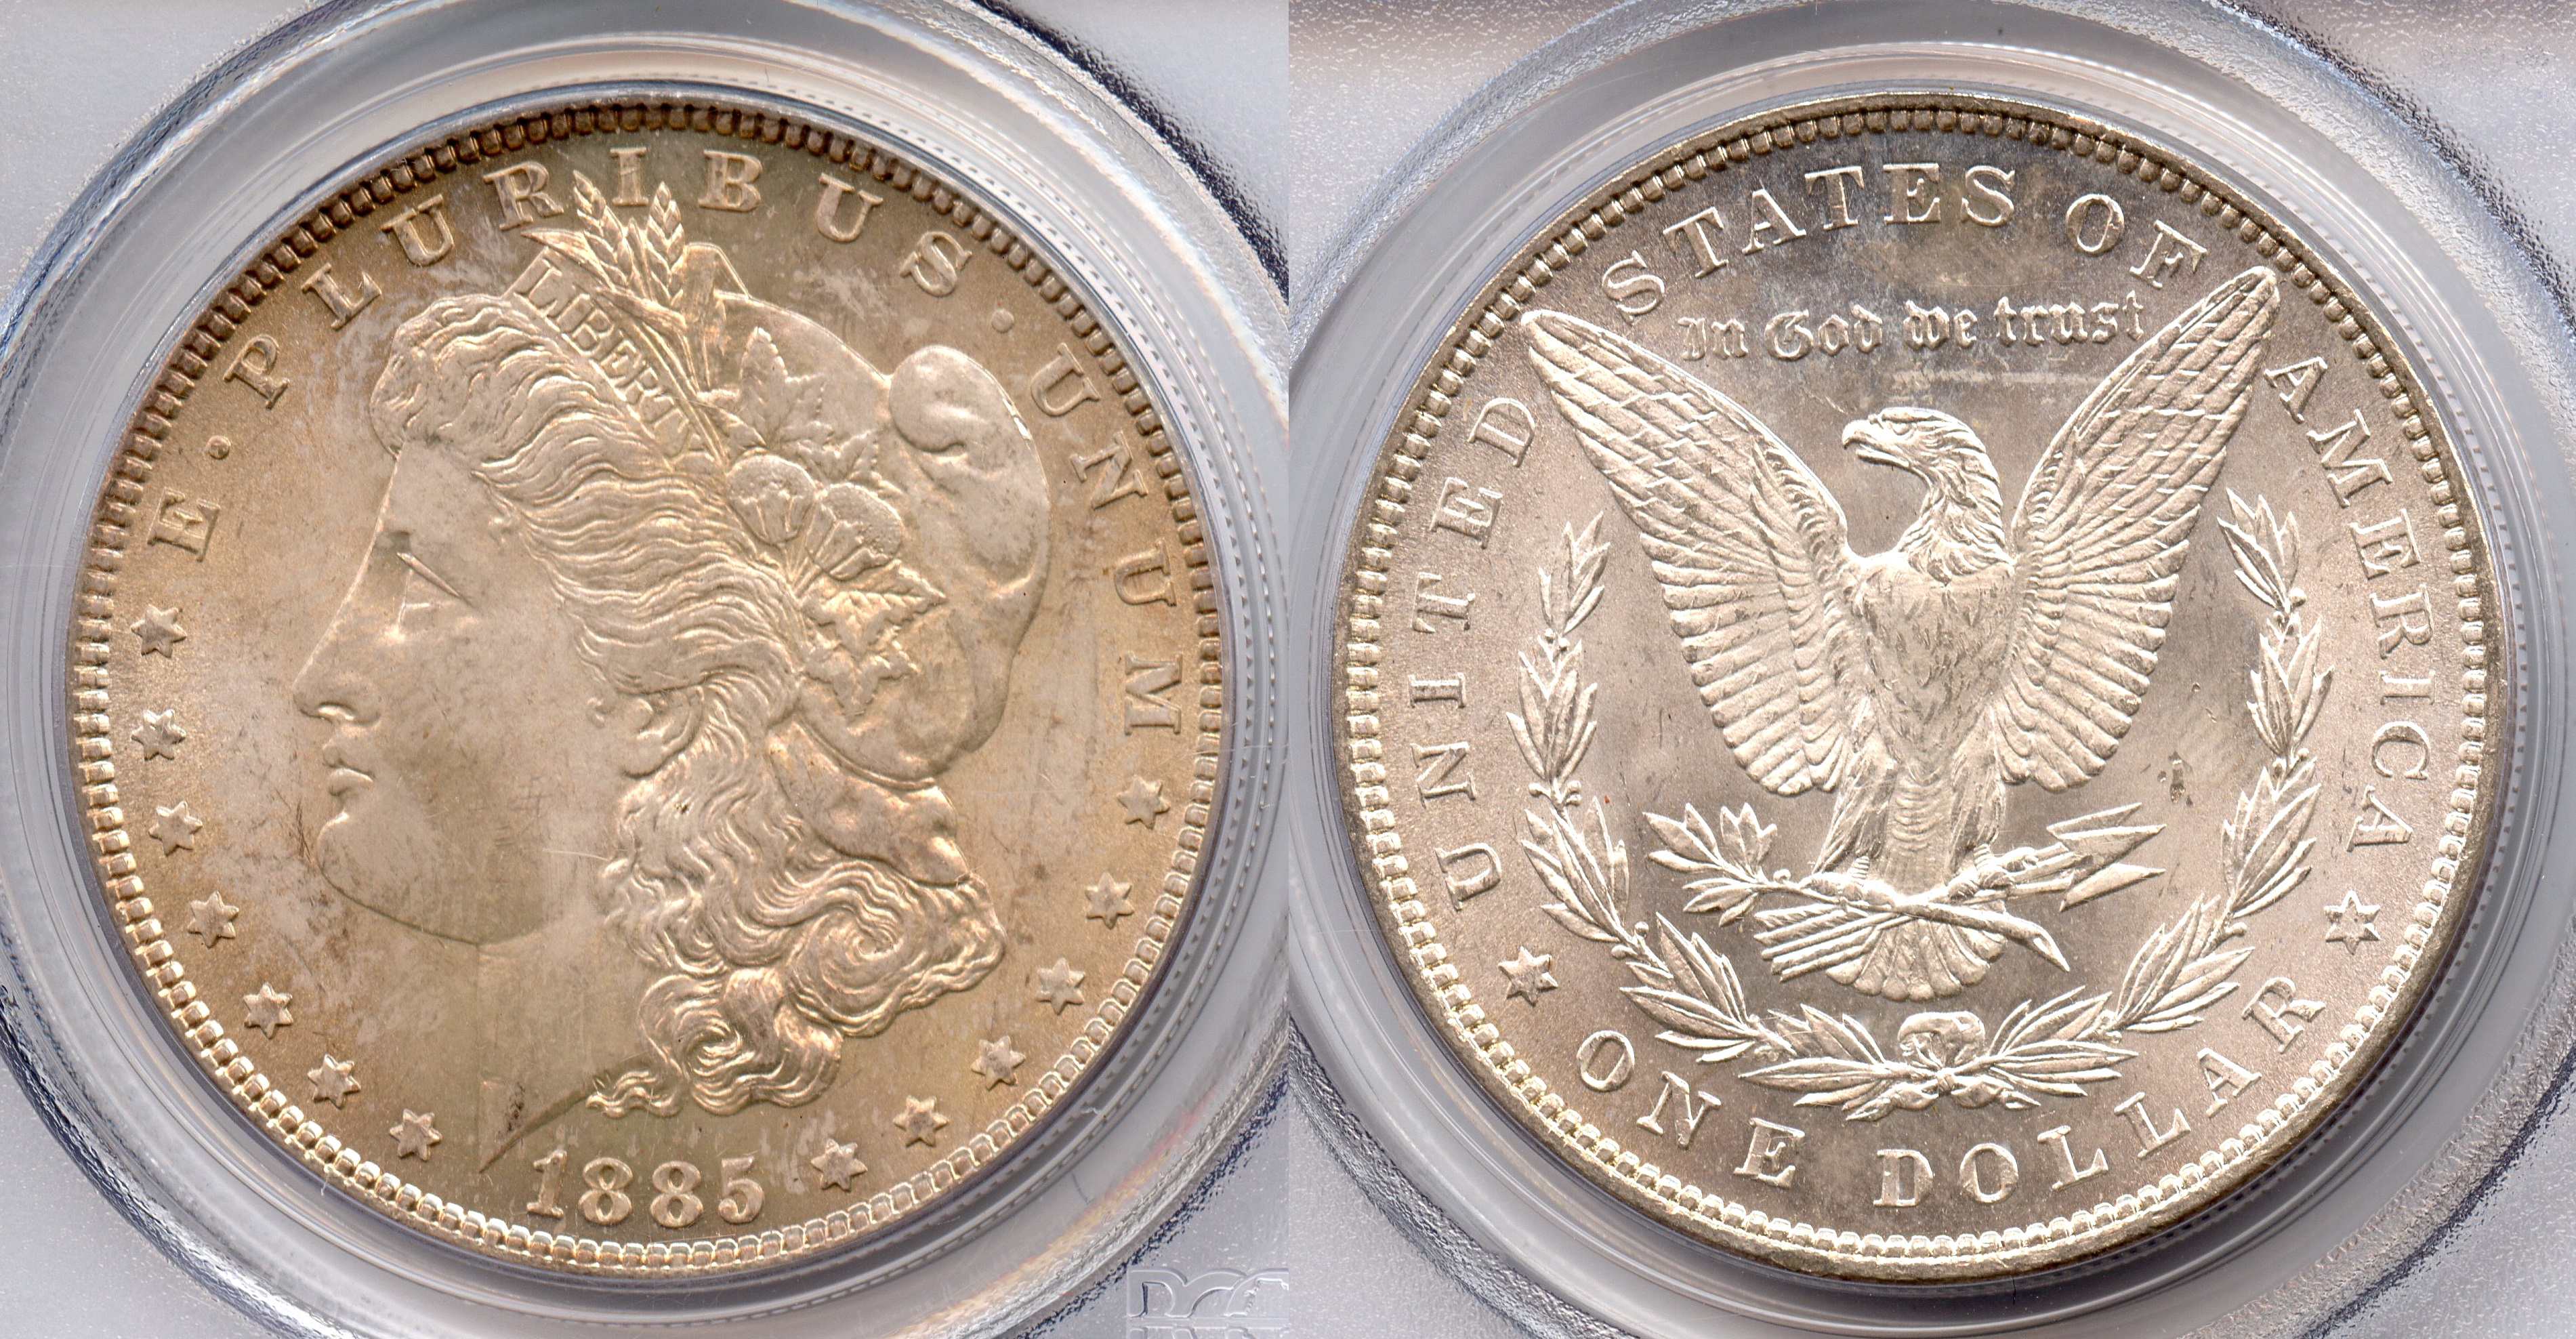 1885 Morgan Silver Dollar PCGS MS-64